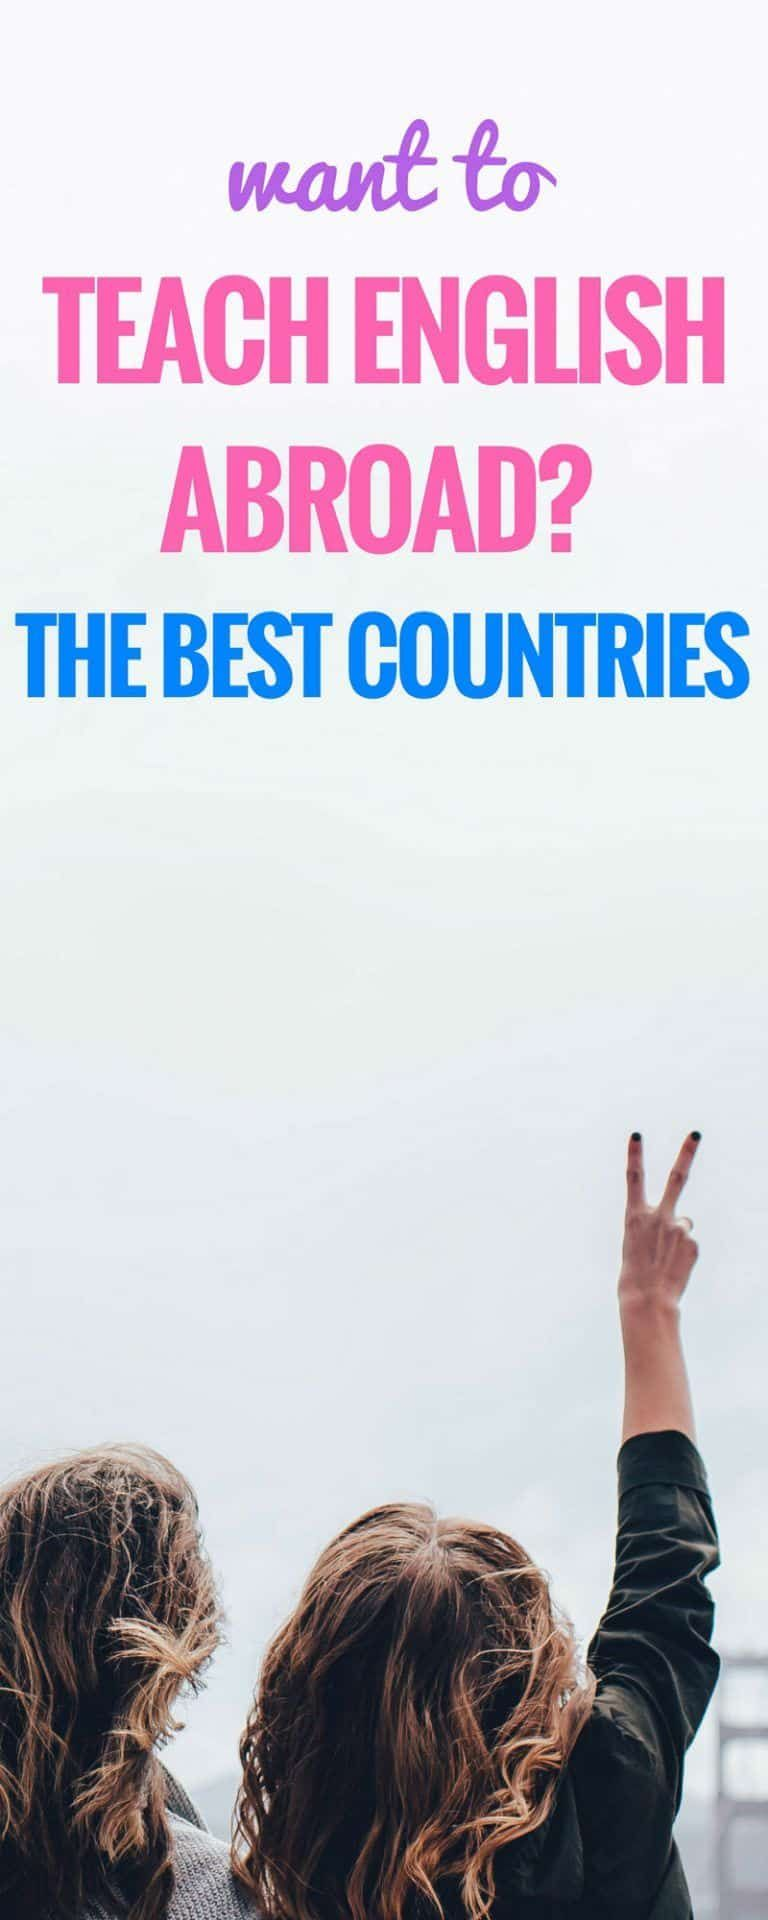 What Are The Best Countries to Teach English Abroad